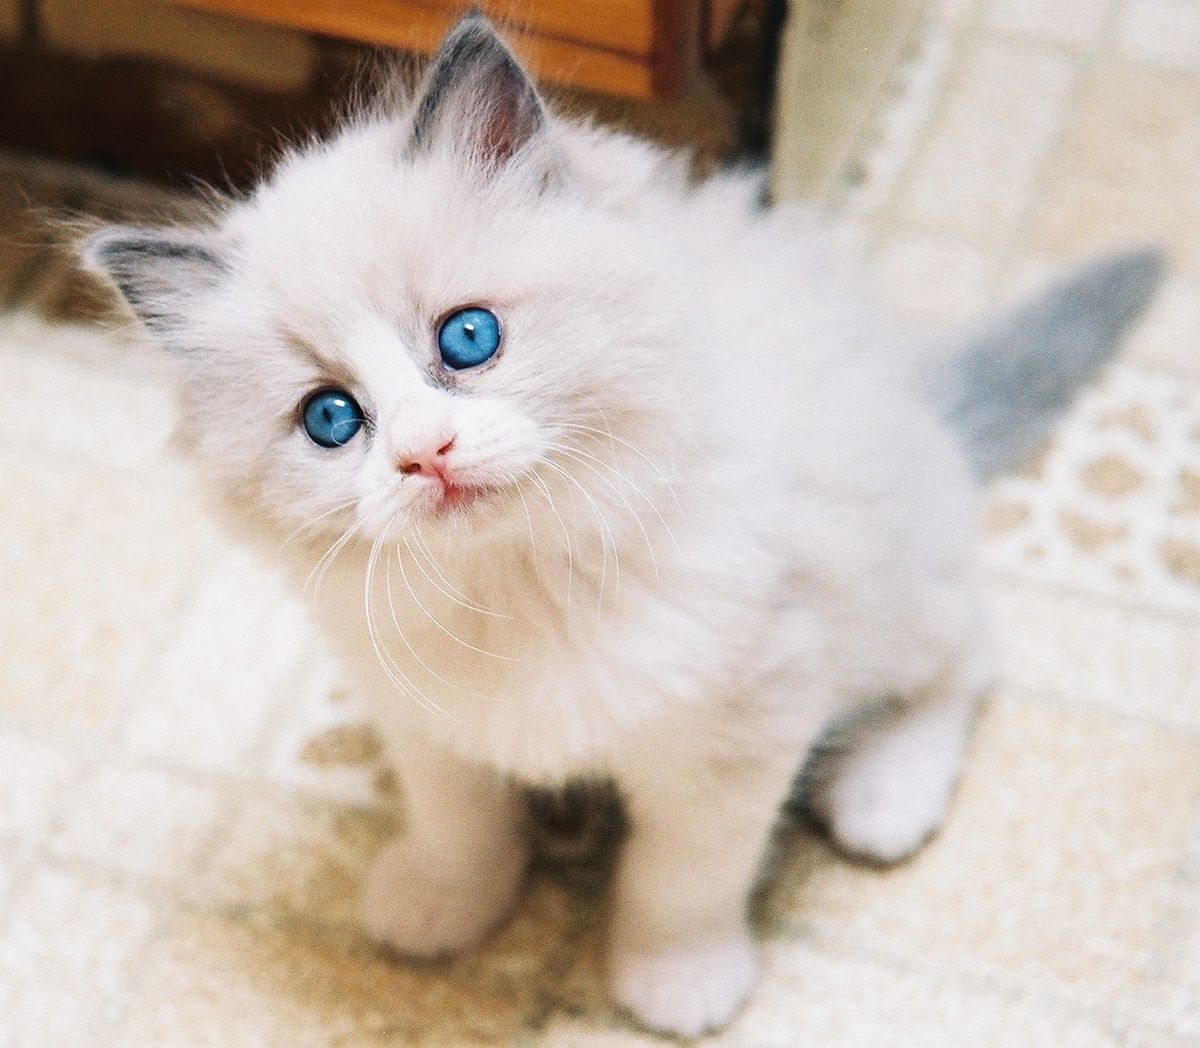 Pin By Carole Romines On Ragdoll Kittens Cats Cute Cat Breeds Cat Breeds Ragdoll Kitten Pictures